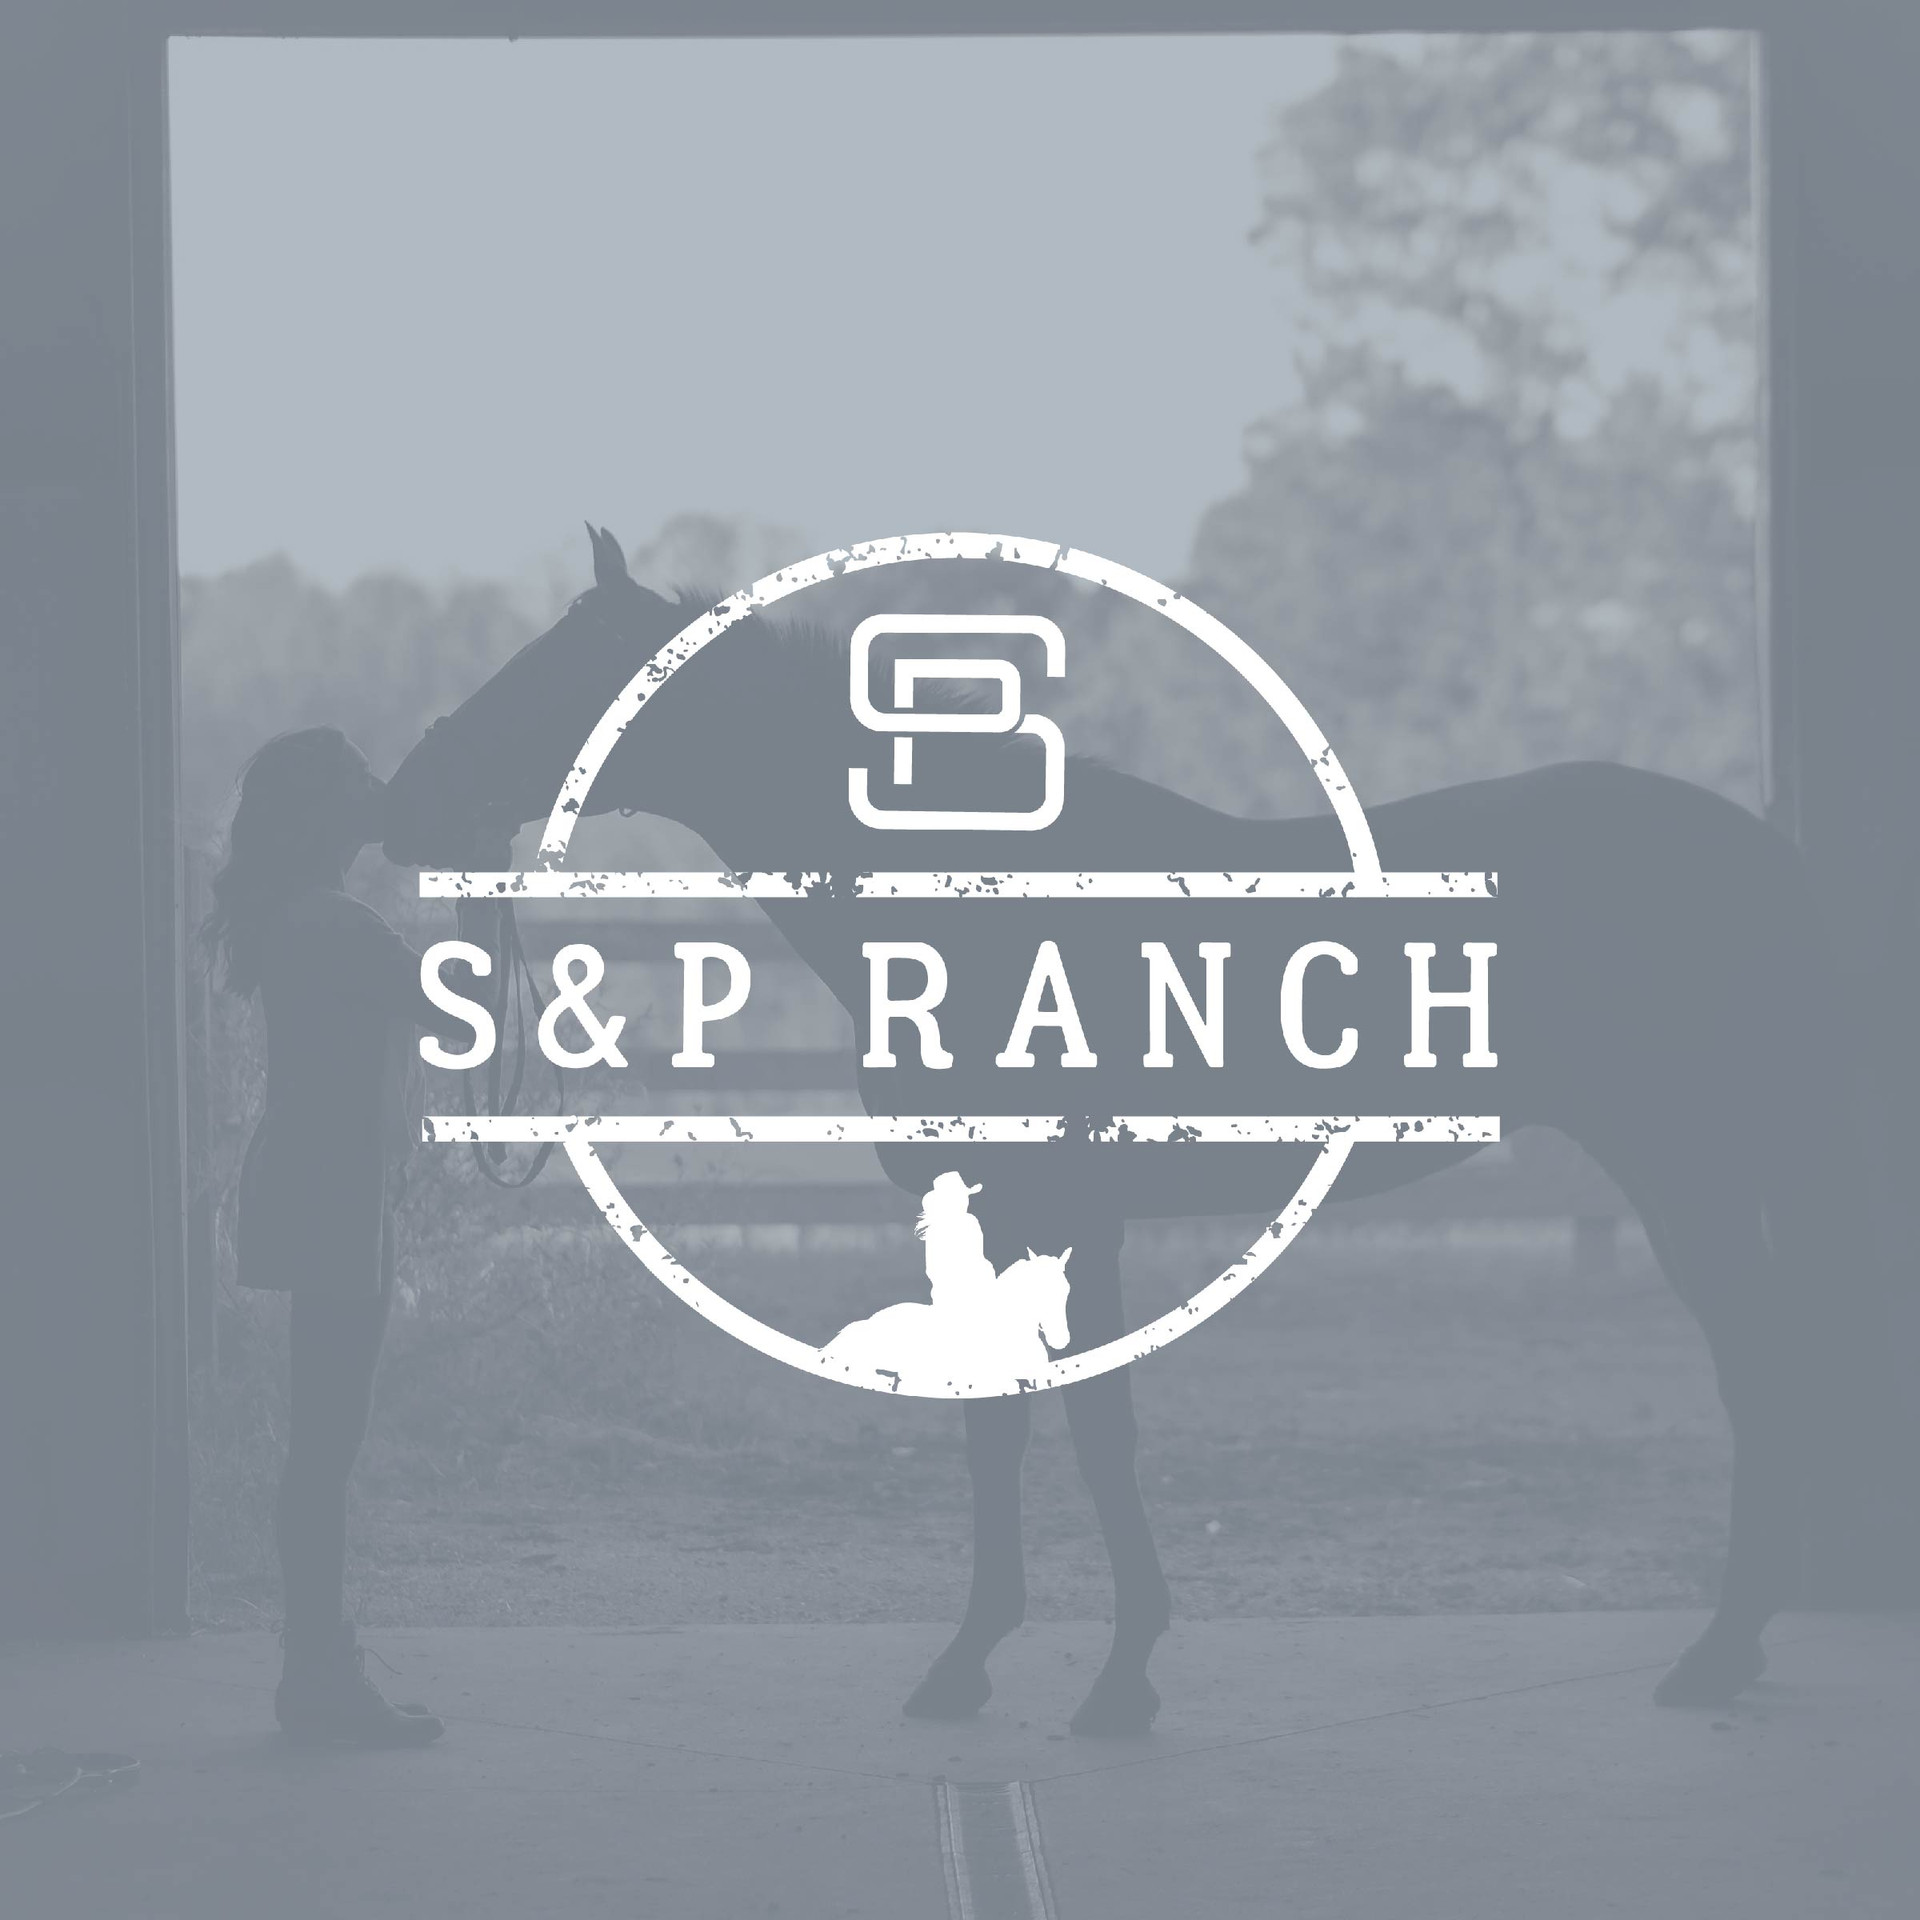 S&P Ranch